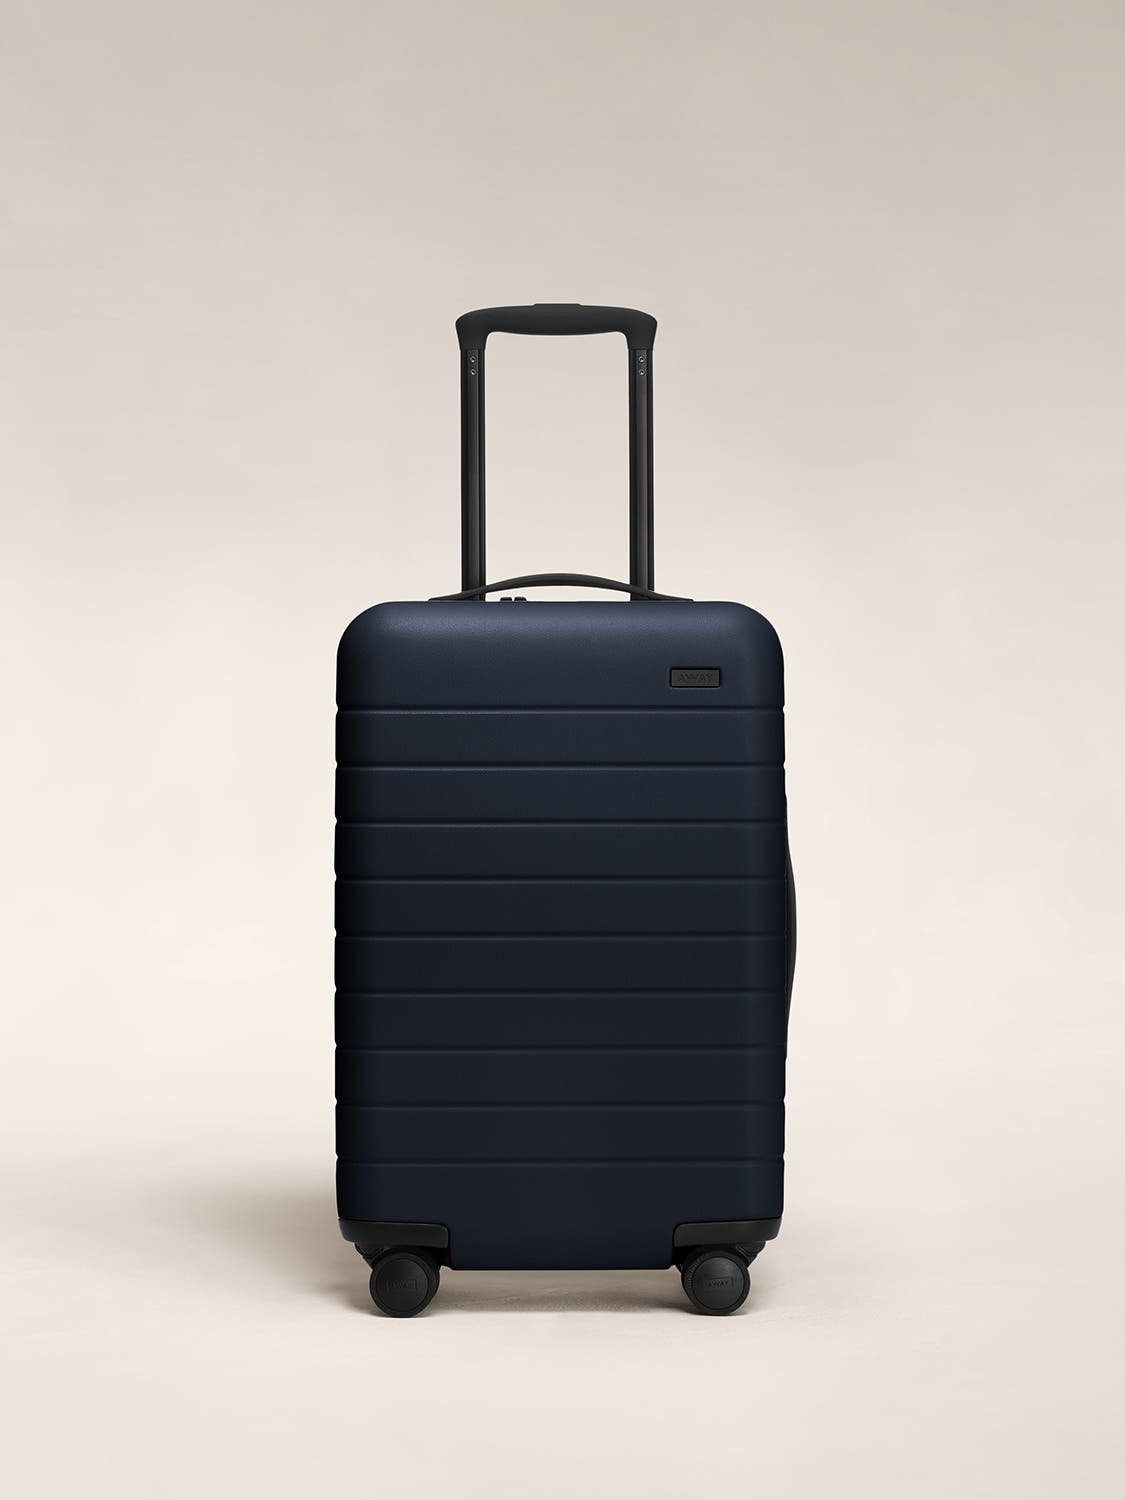 Front view of a navy carry-on suitcase with a hard shell, nylon front pocket, and telescopic handle pulled out.